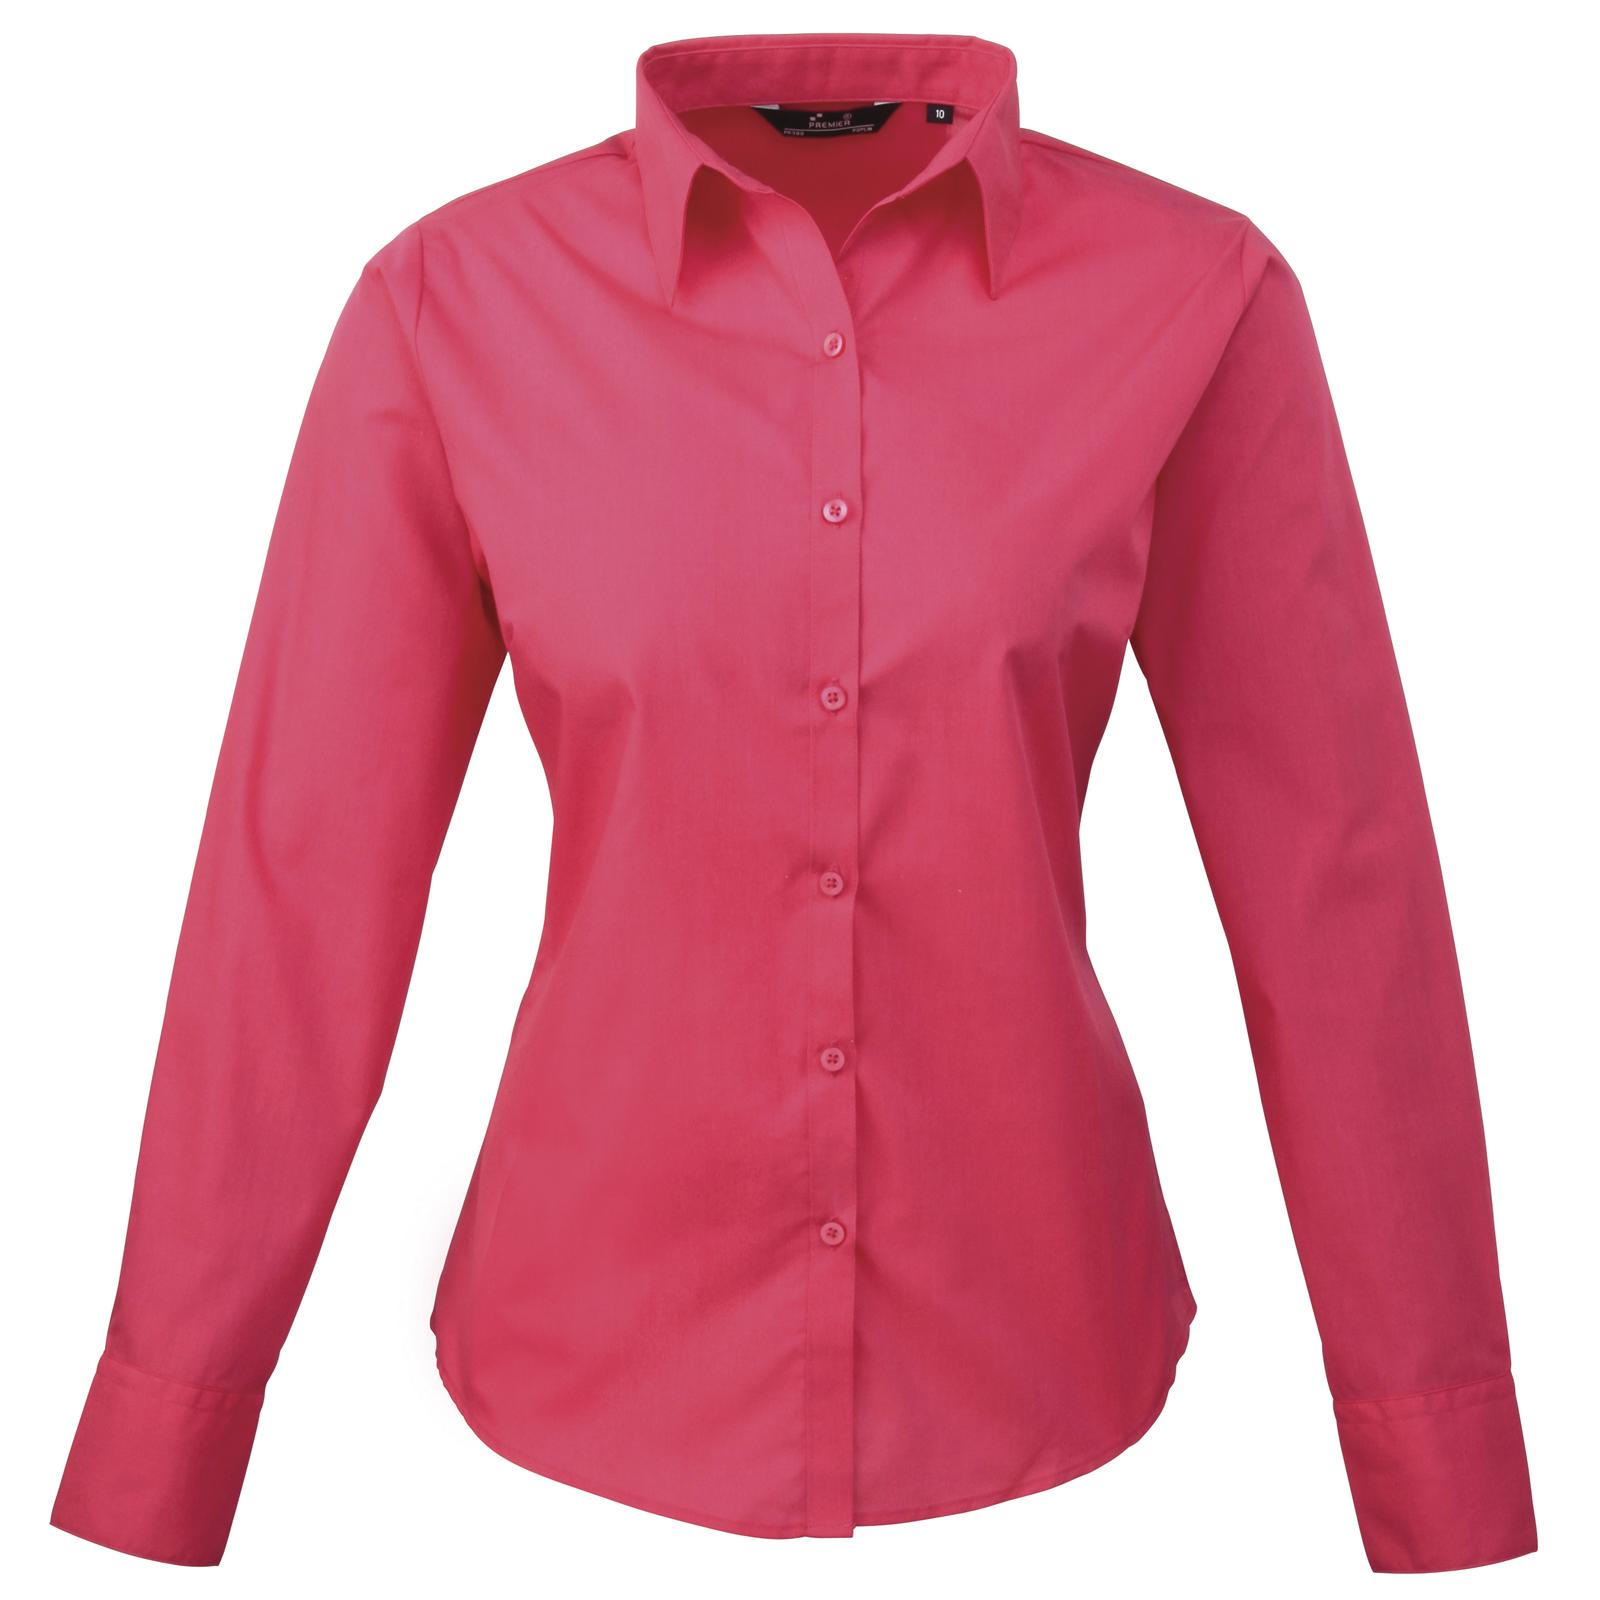 New premier womens ladies poplin long sleeve blouse shirt for Women s broadcloth shirts